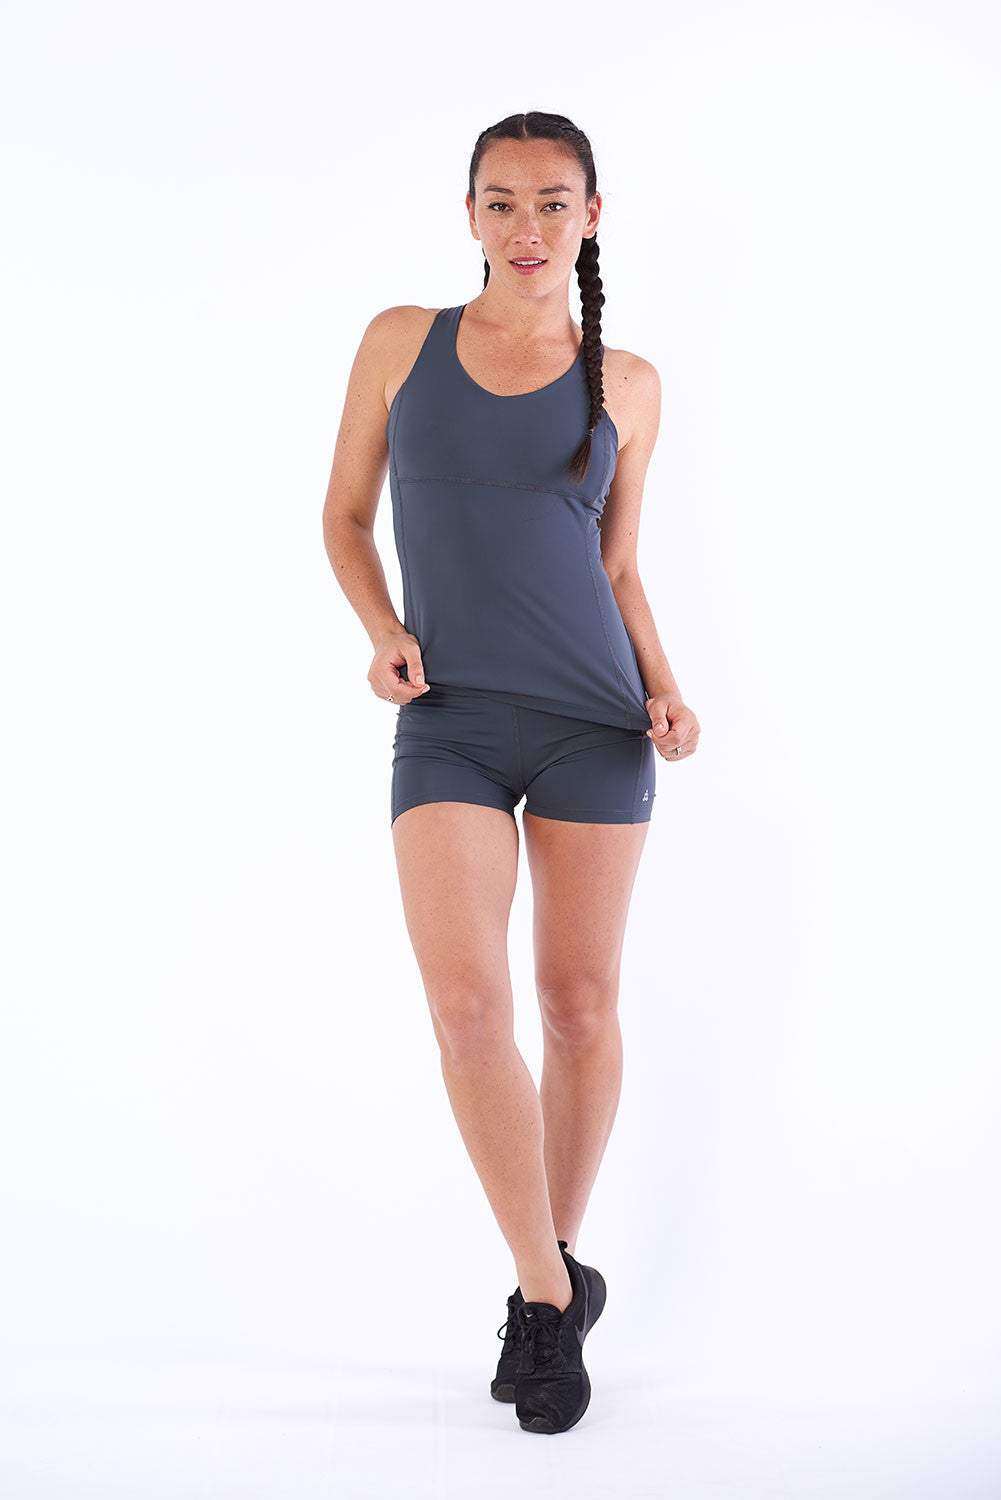 Activewear yoga top fast drying